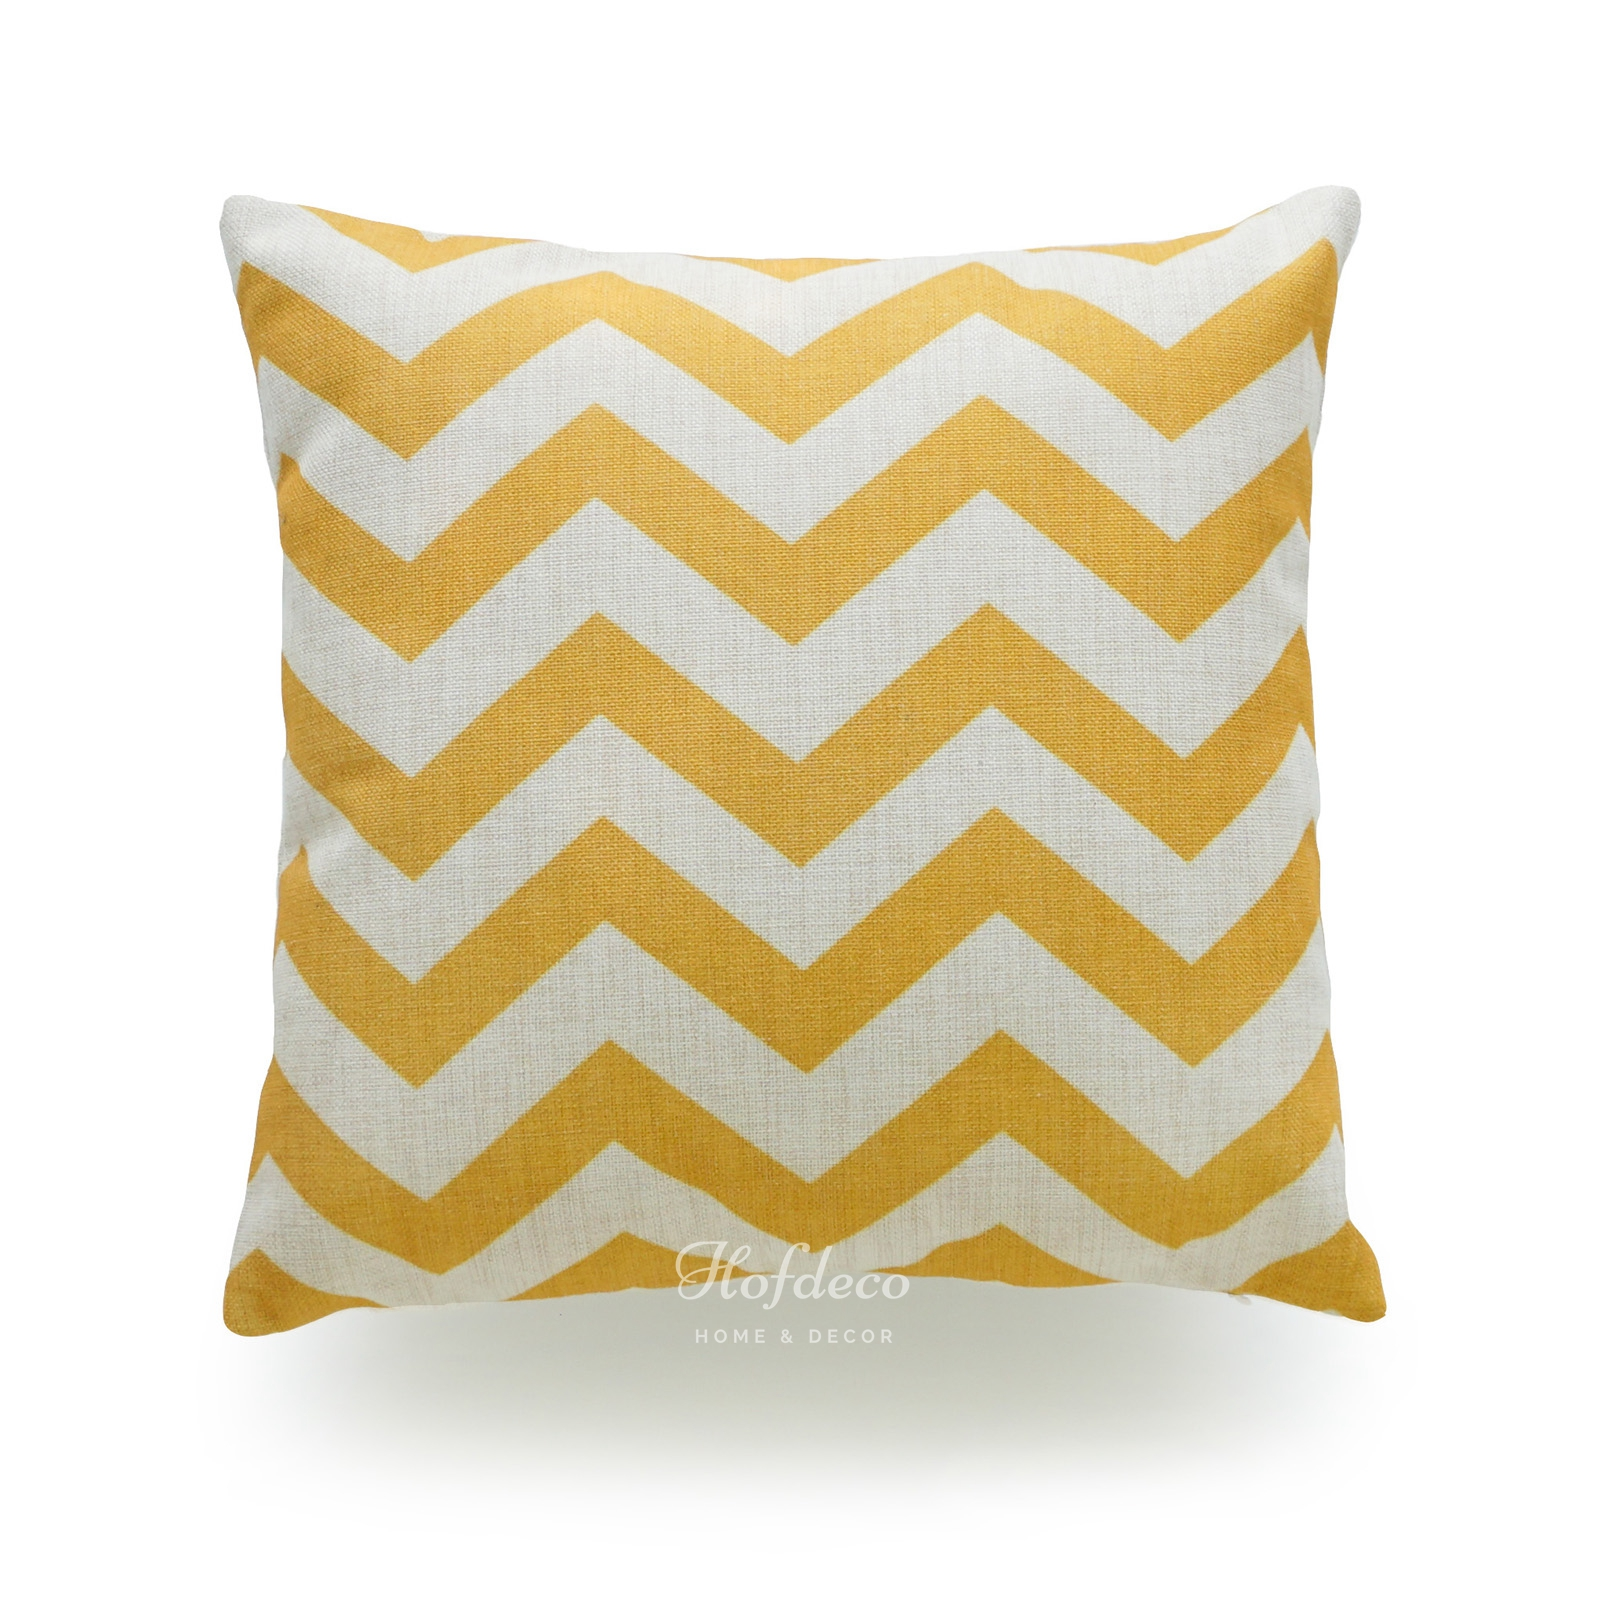 decorative throw pillow case mustard yellow heavy weight fabric cushion cover 18 ebay. Black Bedroom Furniture Sets. Home Design Ideas